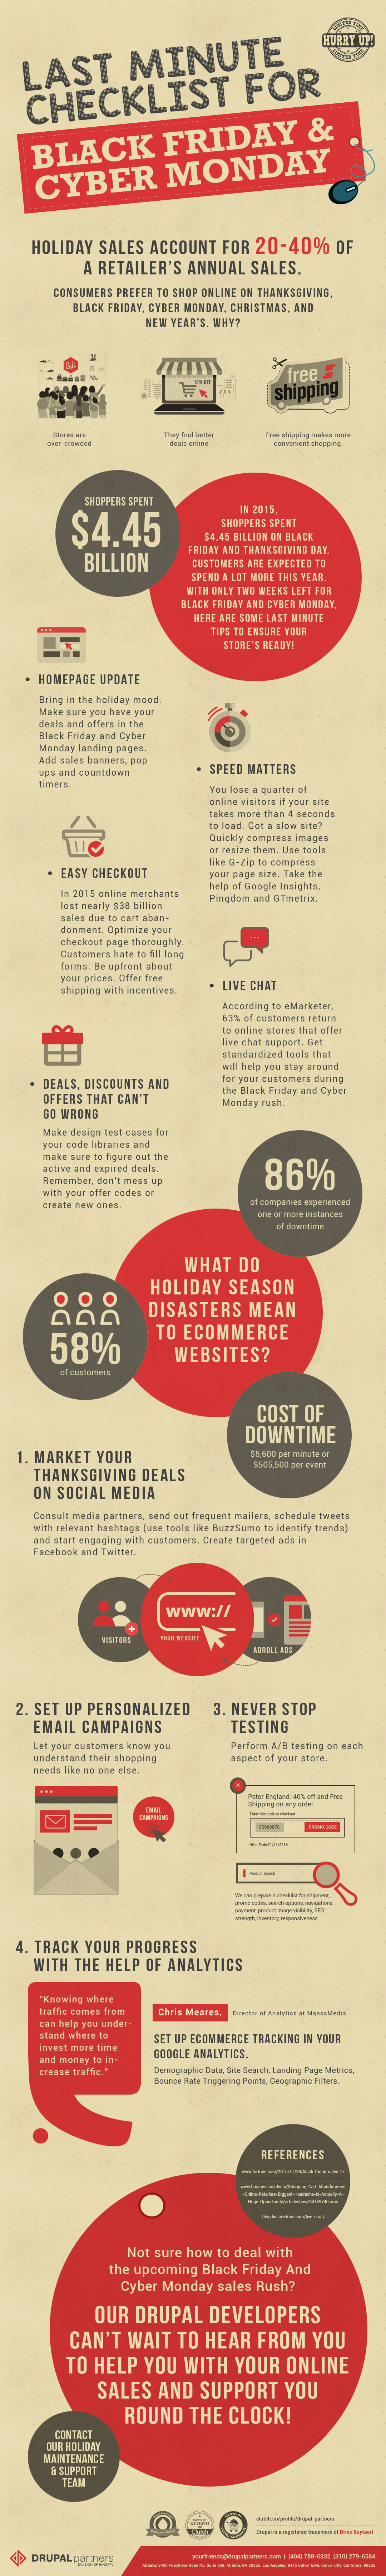 last-minute-checklist-for-black-friday-and-cyber-monday-infographic-plaza